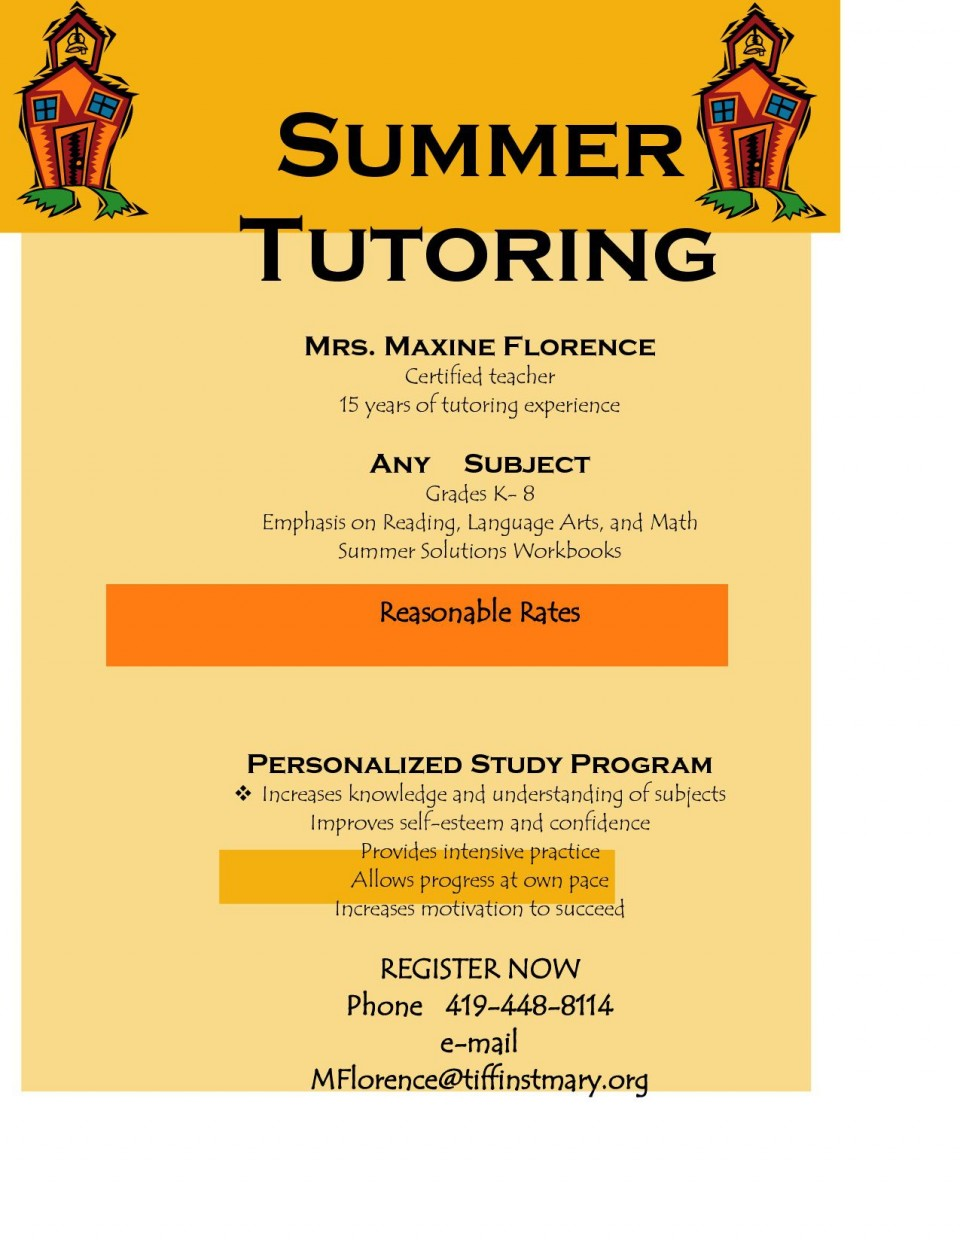 006 Excellent Tutoring Flyer Template Free Image  Word960